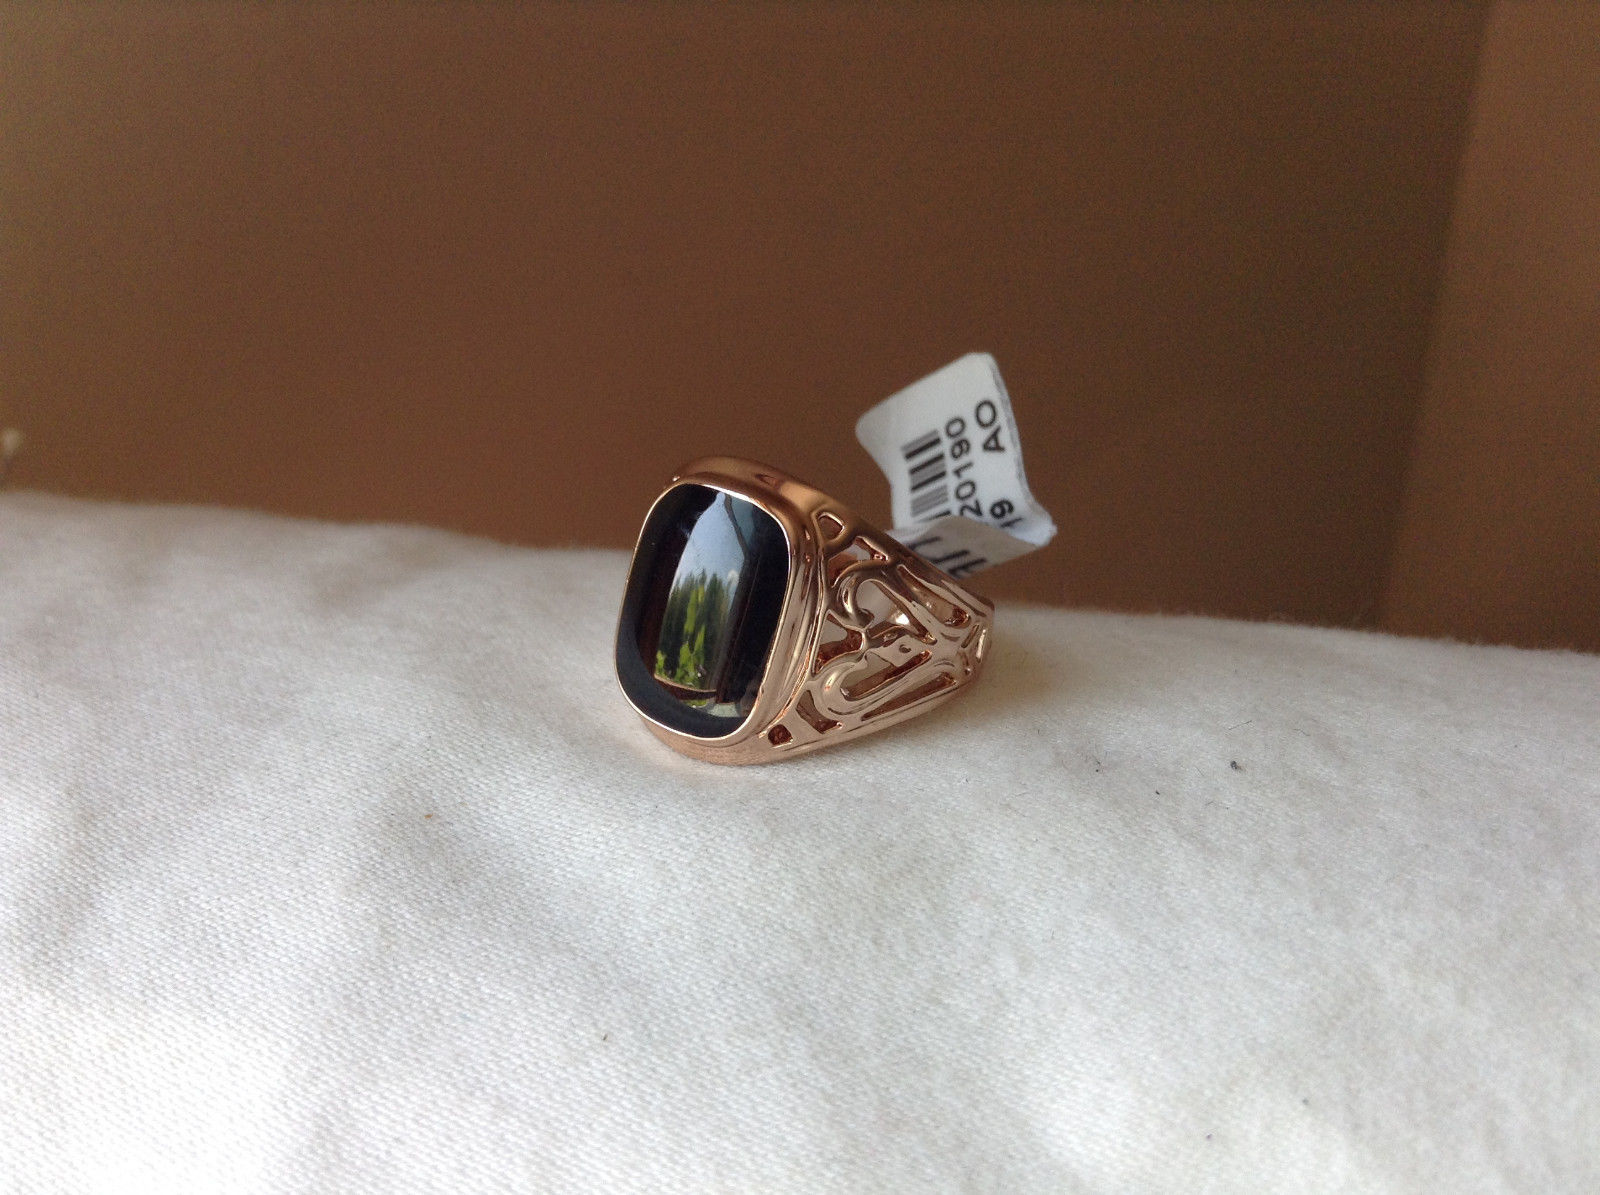 Rose Gold Tone Black Rectangular Stone Heart Swirl Ring Size 8.75 and 10.25